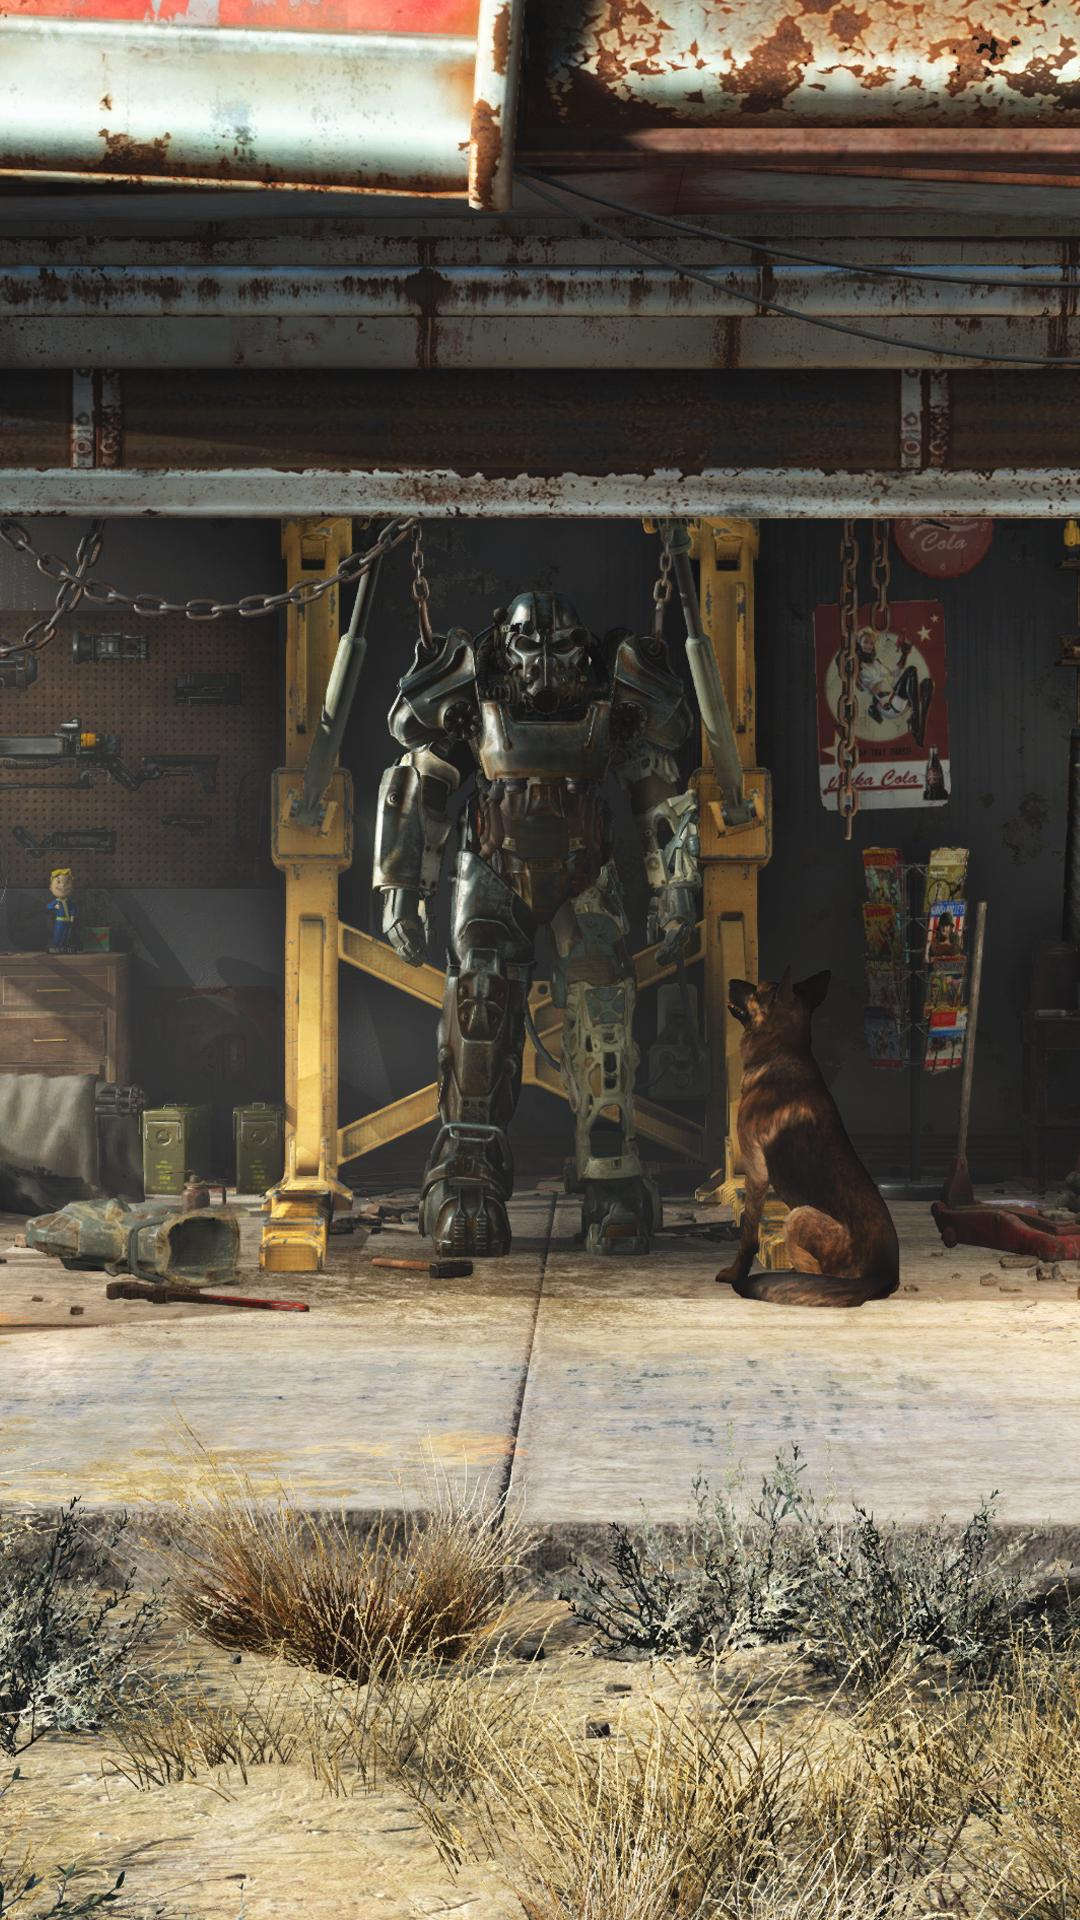 17 Best Fallout 4 Iphone And Mobile Wallpapers Images - Fallout 4 Wallpaper Smartphone , HD Wallpaper & Backgrounds